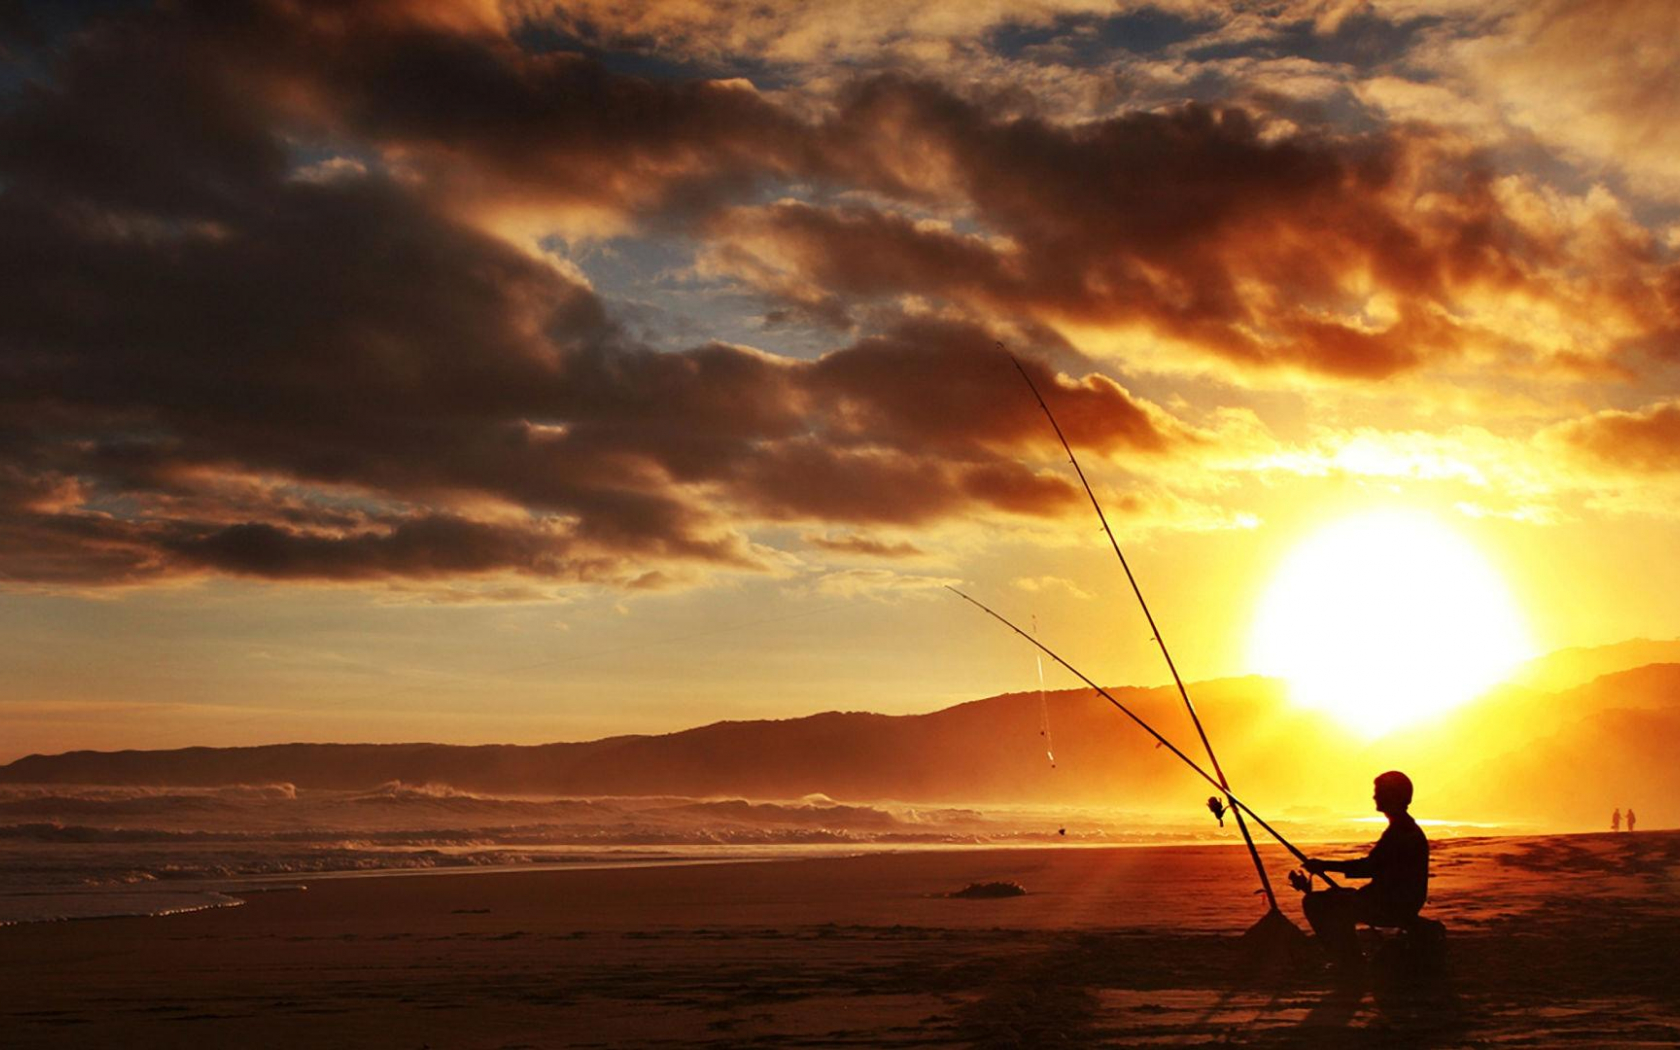 Free Download Man Fishing On Beach In Sunset Hd Wallpaper Wallpaper List 1920x1080 For Your Desktop Mobile Tablet Explore 49 Fishing Wallpaper Hd Fish Wallpaper Fly Fishing Wallpaper Fish